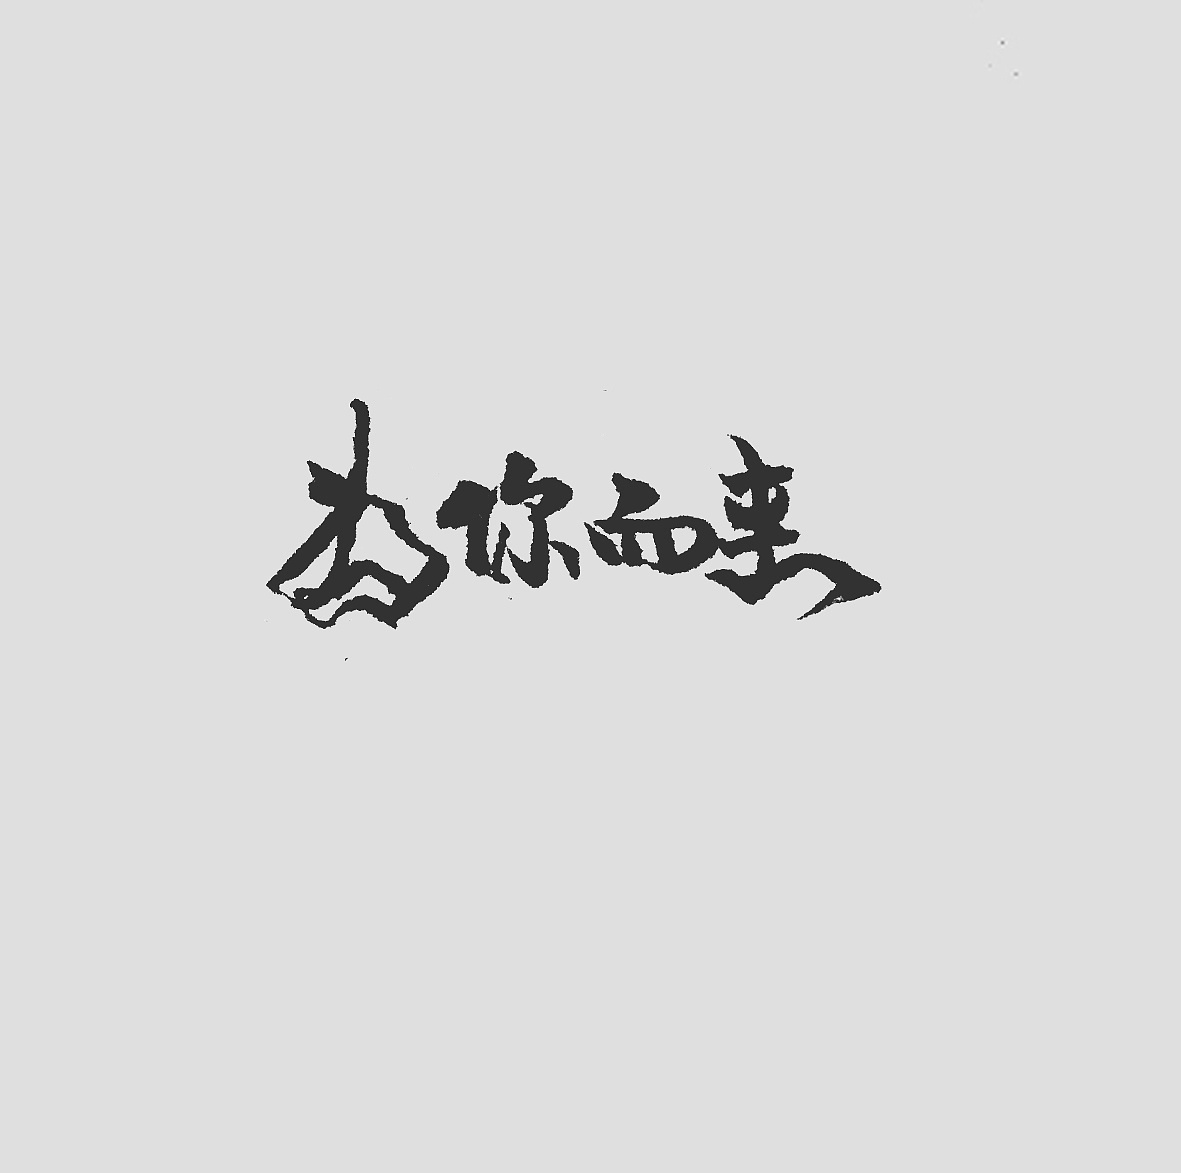 chinesefontdesign.com 2017 08 02 14 02 59 299761 21P The most cool and heroic Chinese brush calligraphy